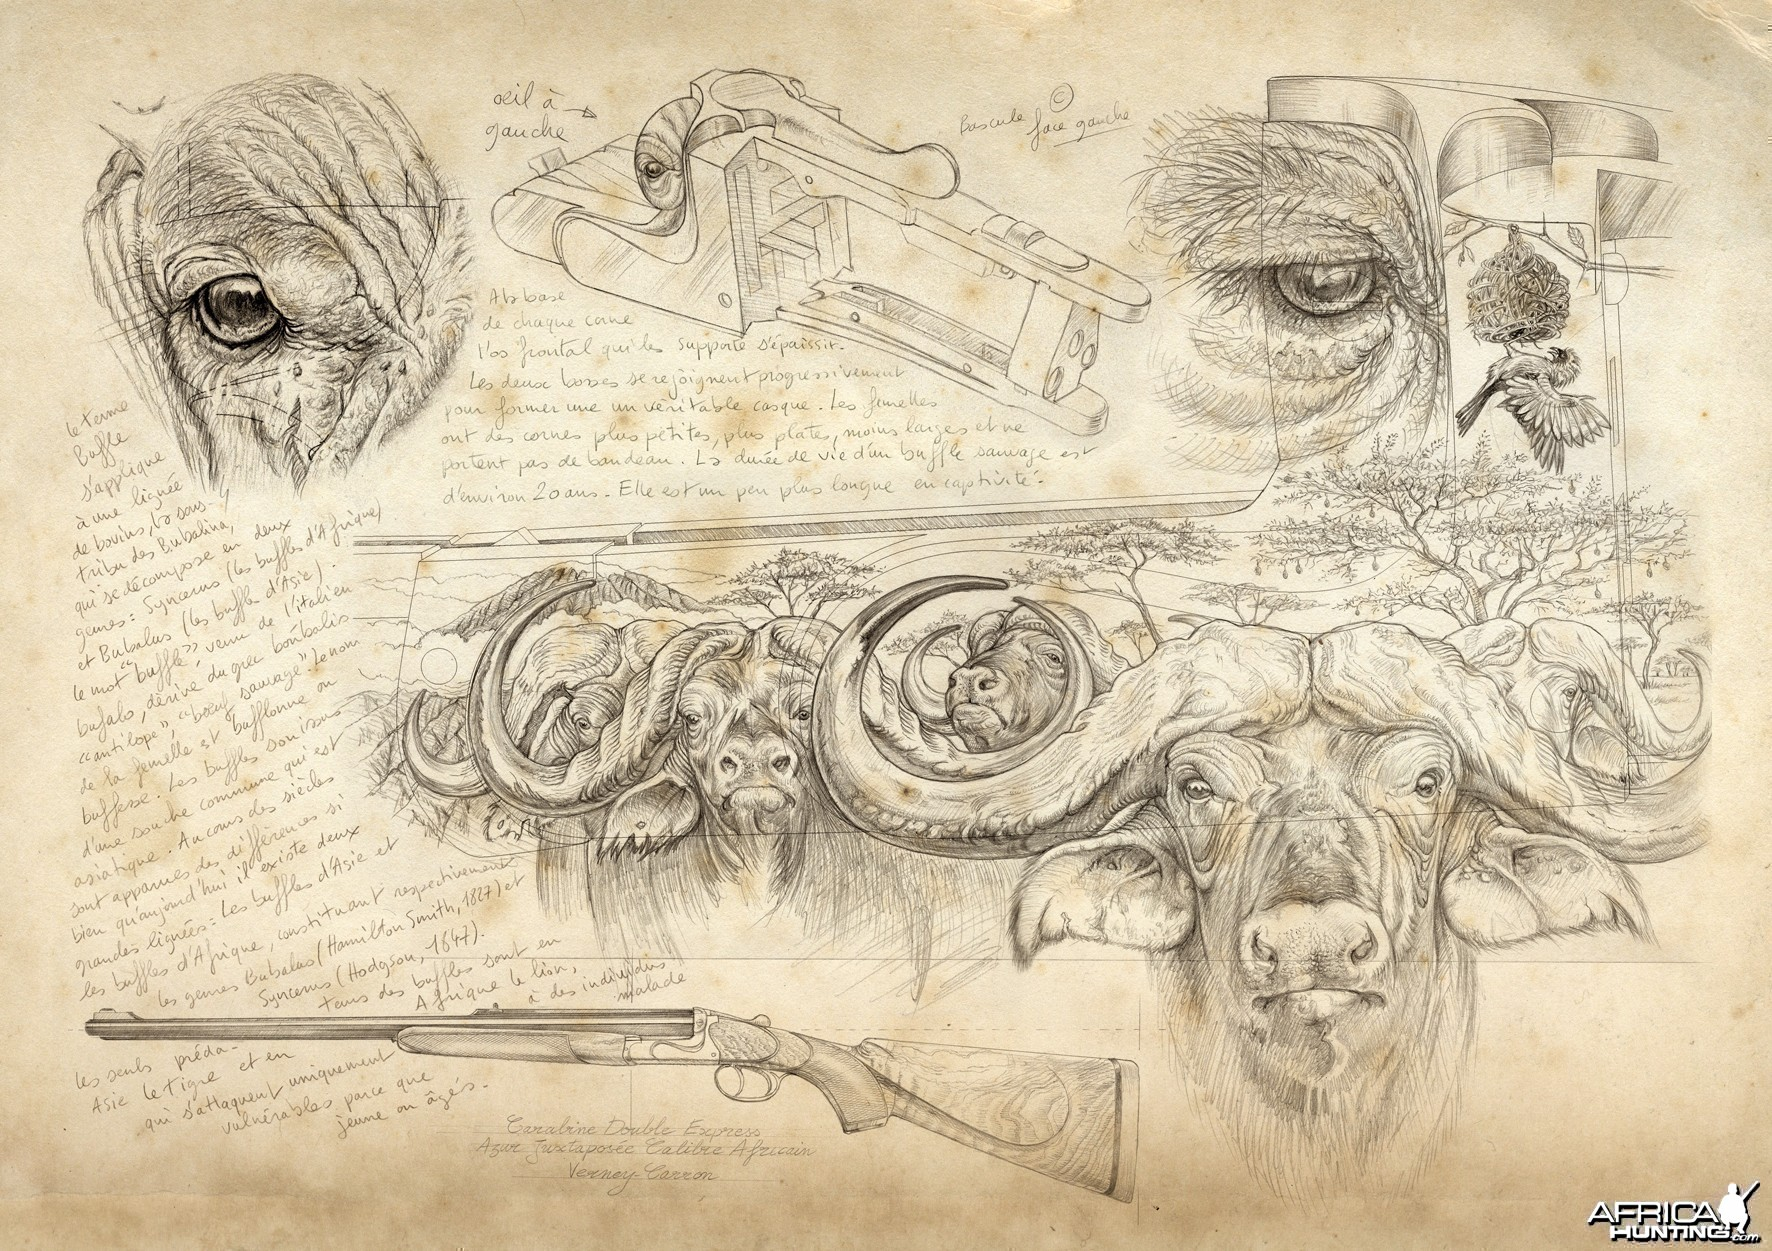 Wildlife Artist Marcello Pettineo - Buffalo Gun Engraving